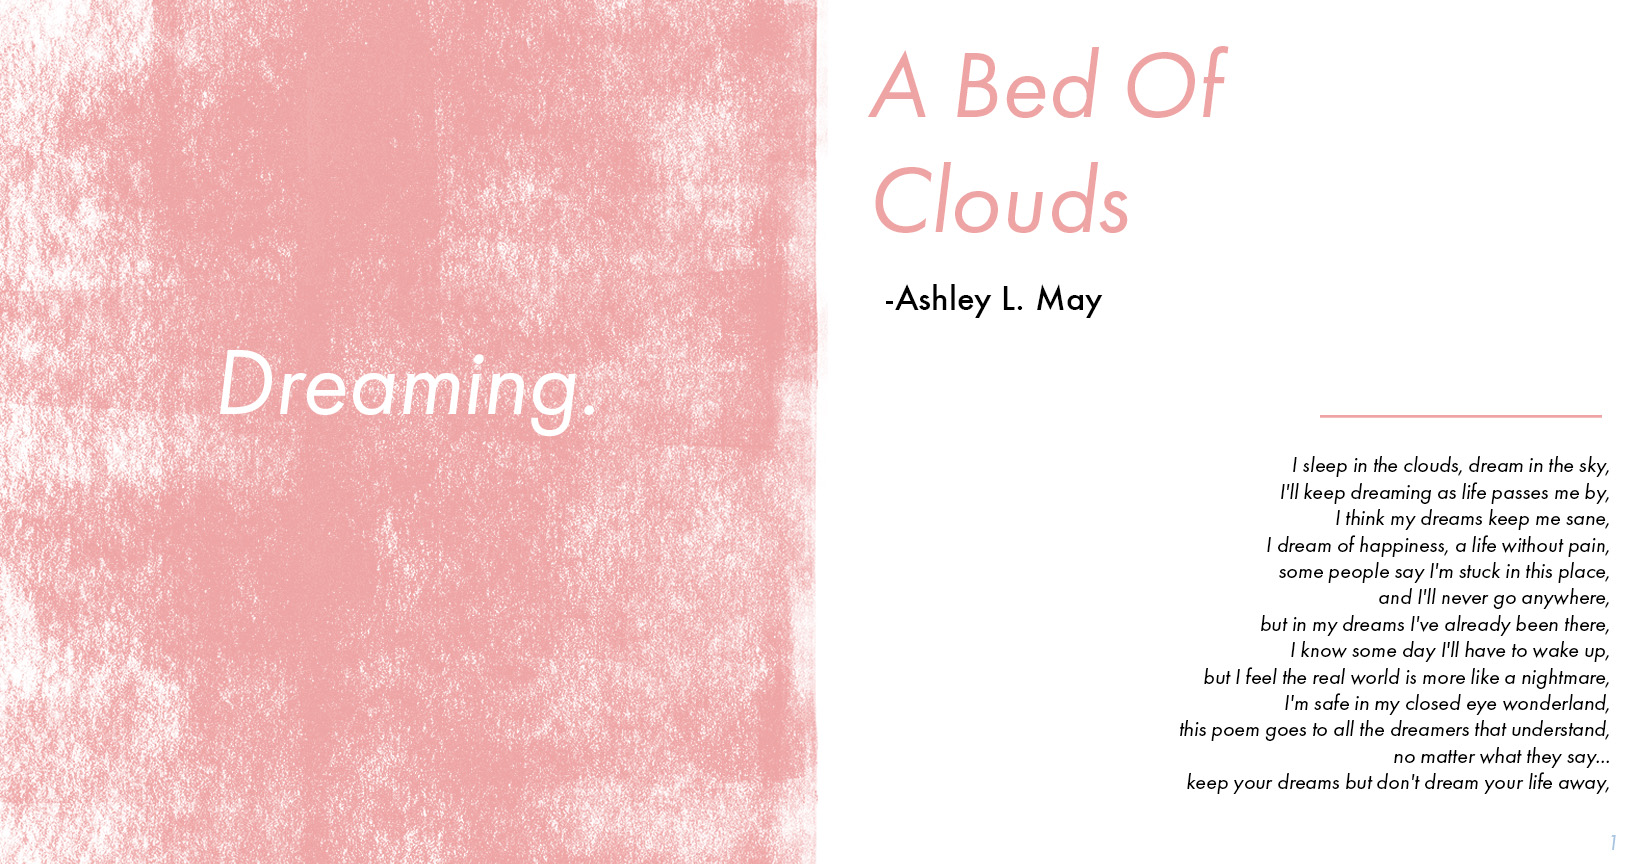 """""""A Bed Of Clouds"""" - Ashley L. May's Poem Layout"""